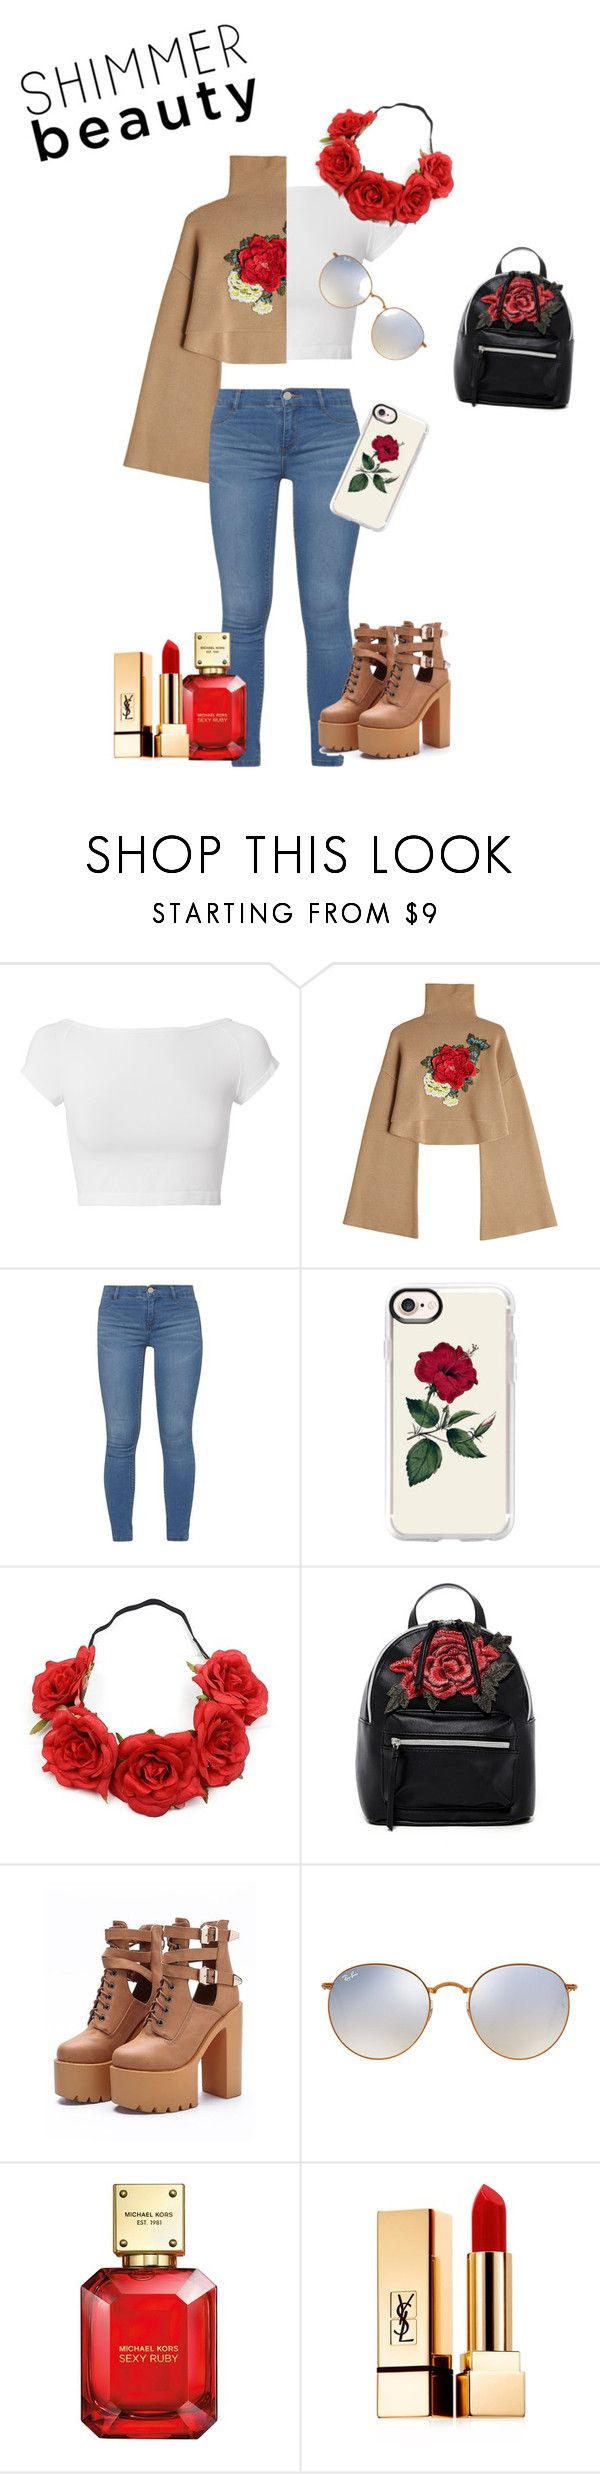 """""""Shimmer Beauty"""" by kawaii-girl44 ❤ liked on Polyvore featuring Helmut Lang, William Fan, Dorothy Perkins, Casetify, T-shirt & Jeans, WithChic, Ray-Ban, Michael Kors and Yves Saint Laurent"""